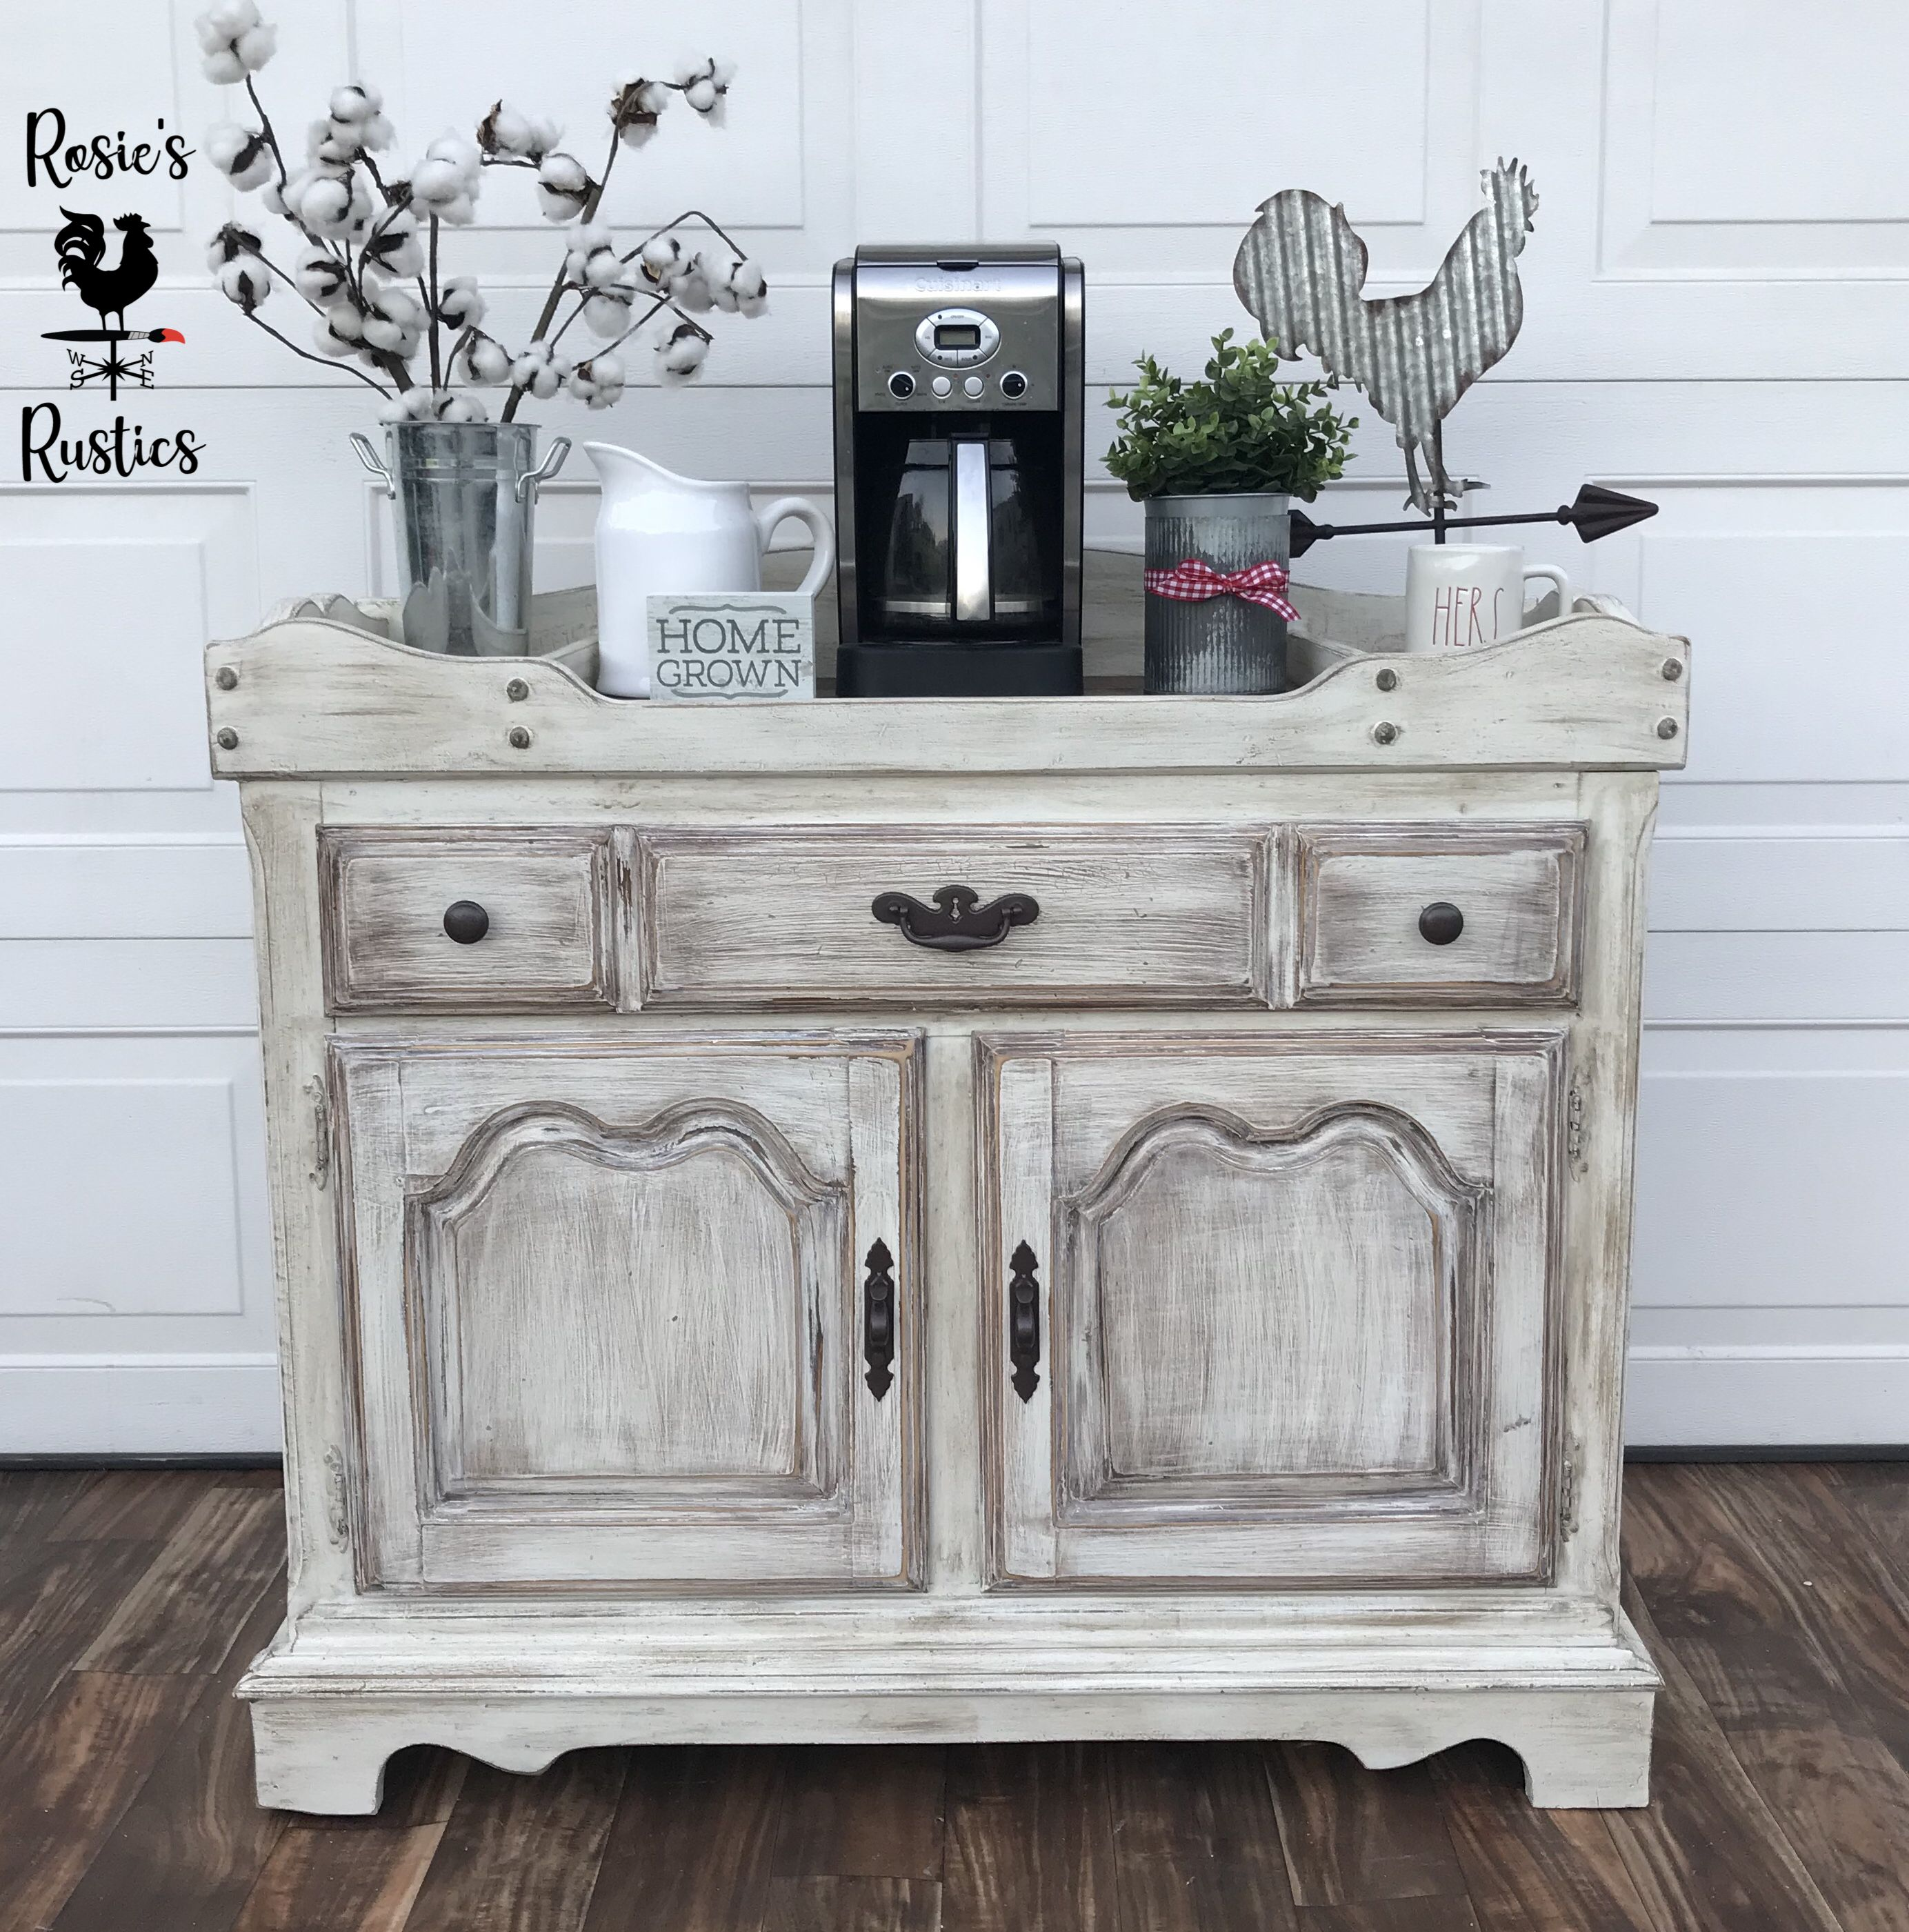 Vintage Rustic Painted Cabinet In Antique White By General